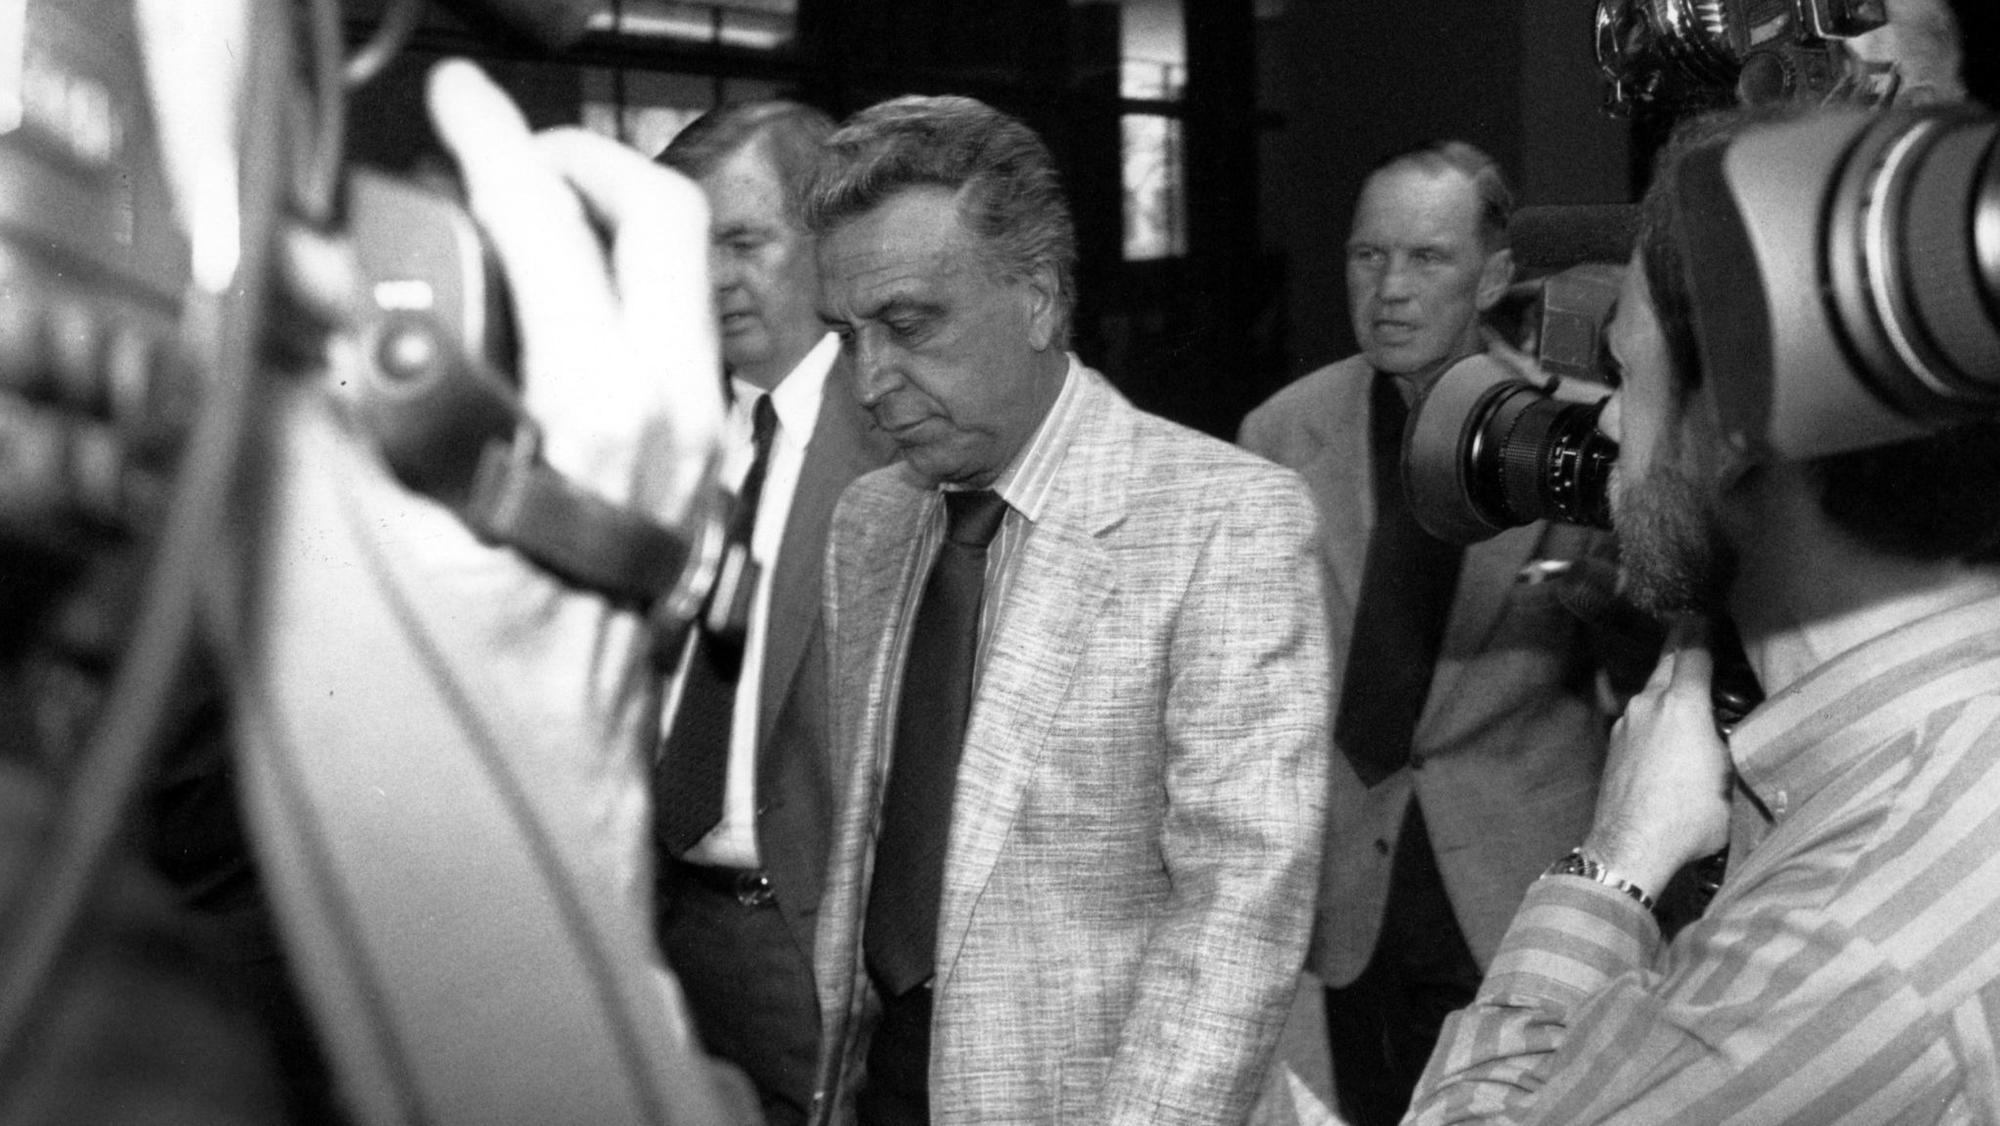 Reputed Chicago Outfit boss John DiFronzo dies at 89